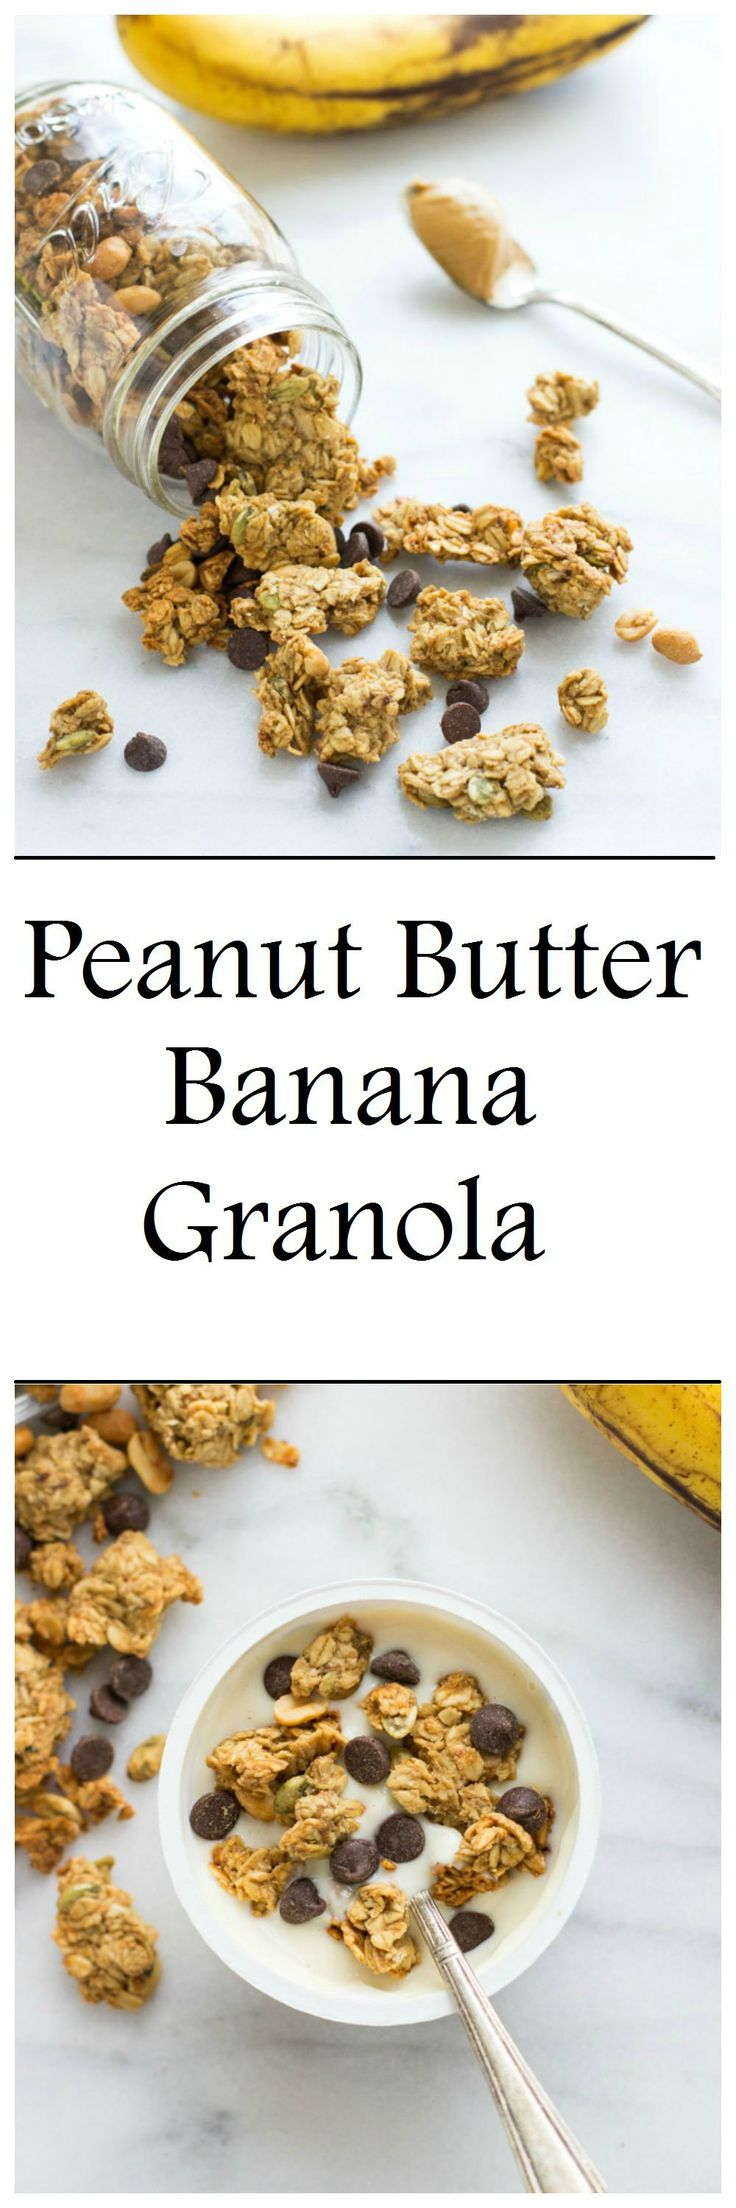 Peanut Butter Banana Granola- this recipe makes the biggest clusters EVER! #refinedsugarfree #glutenfree